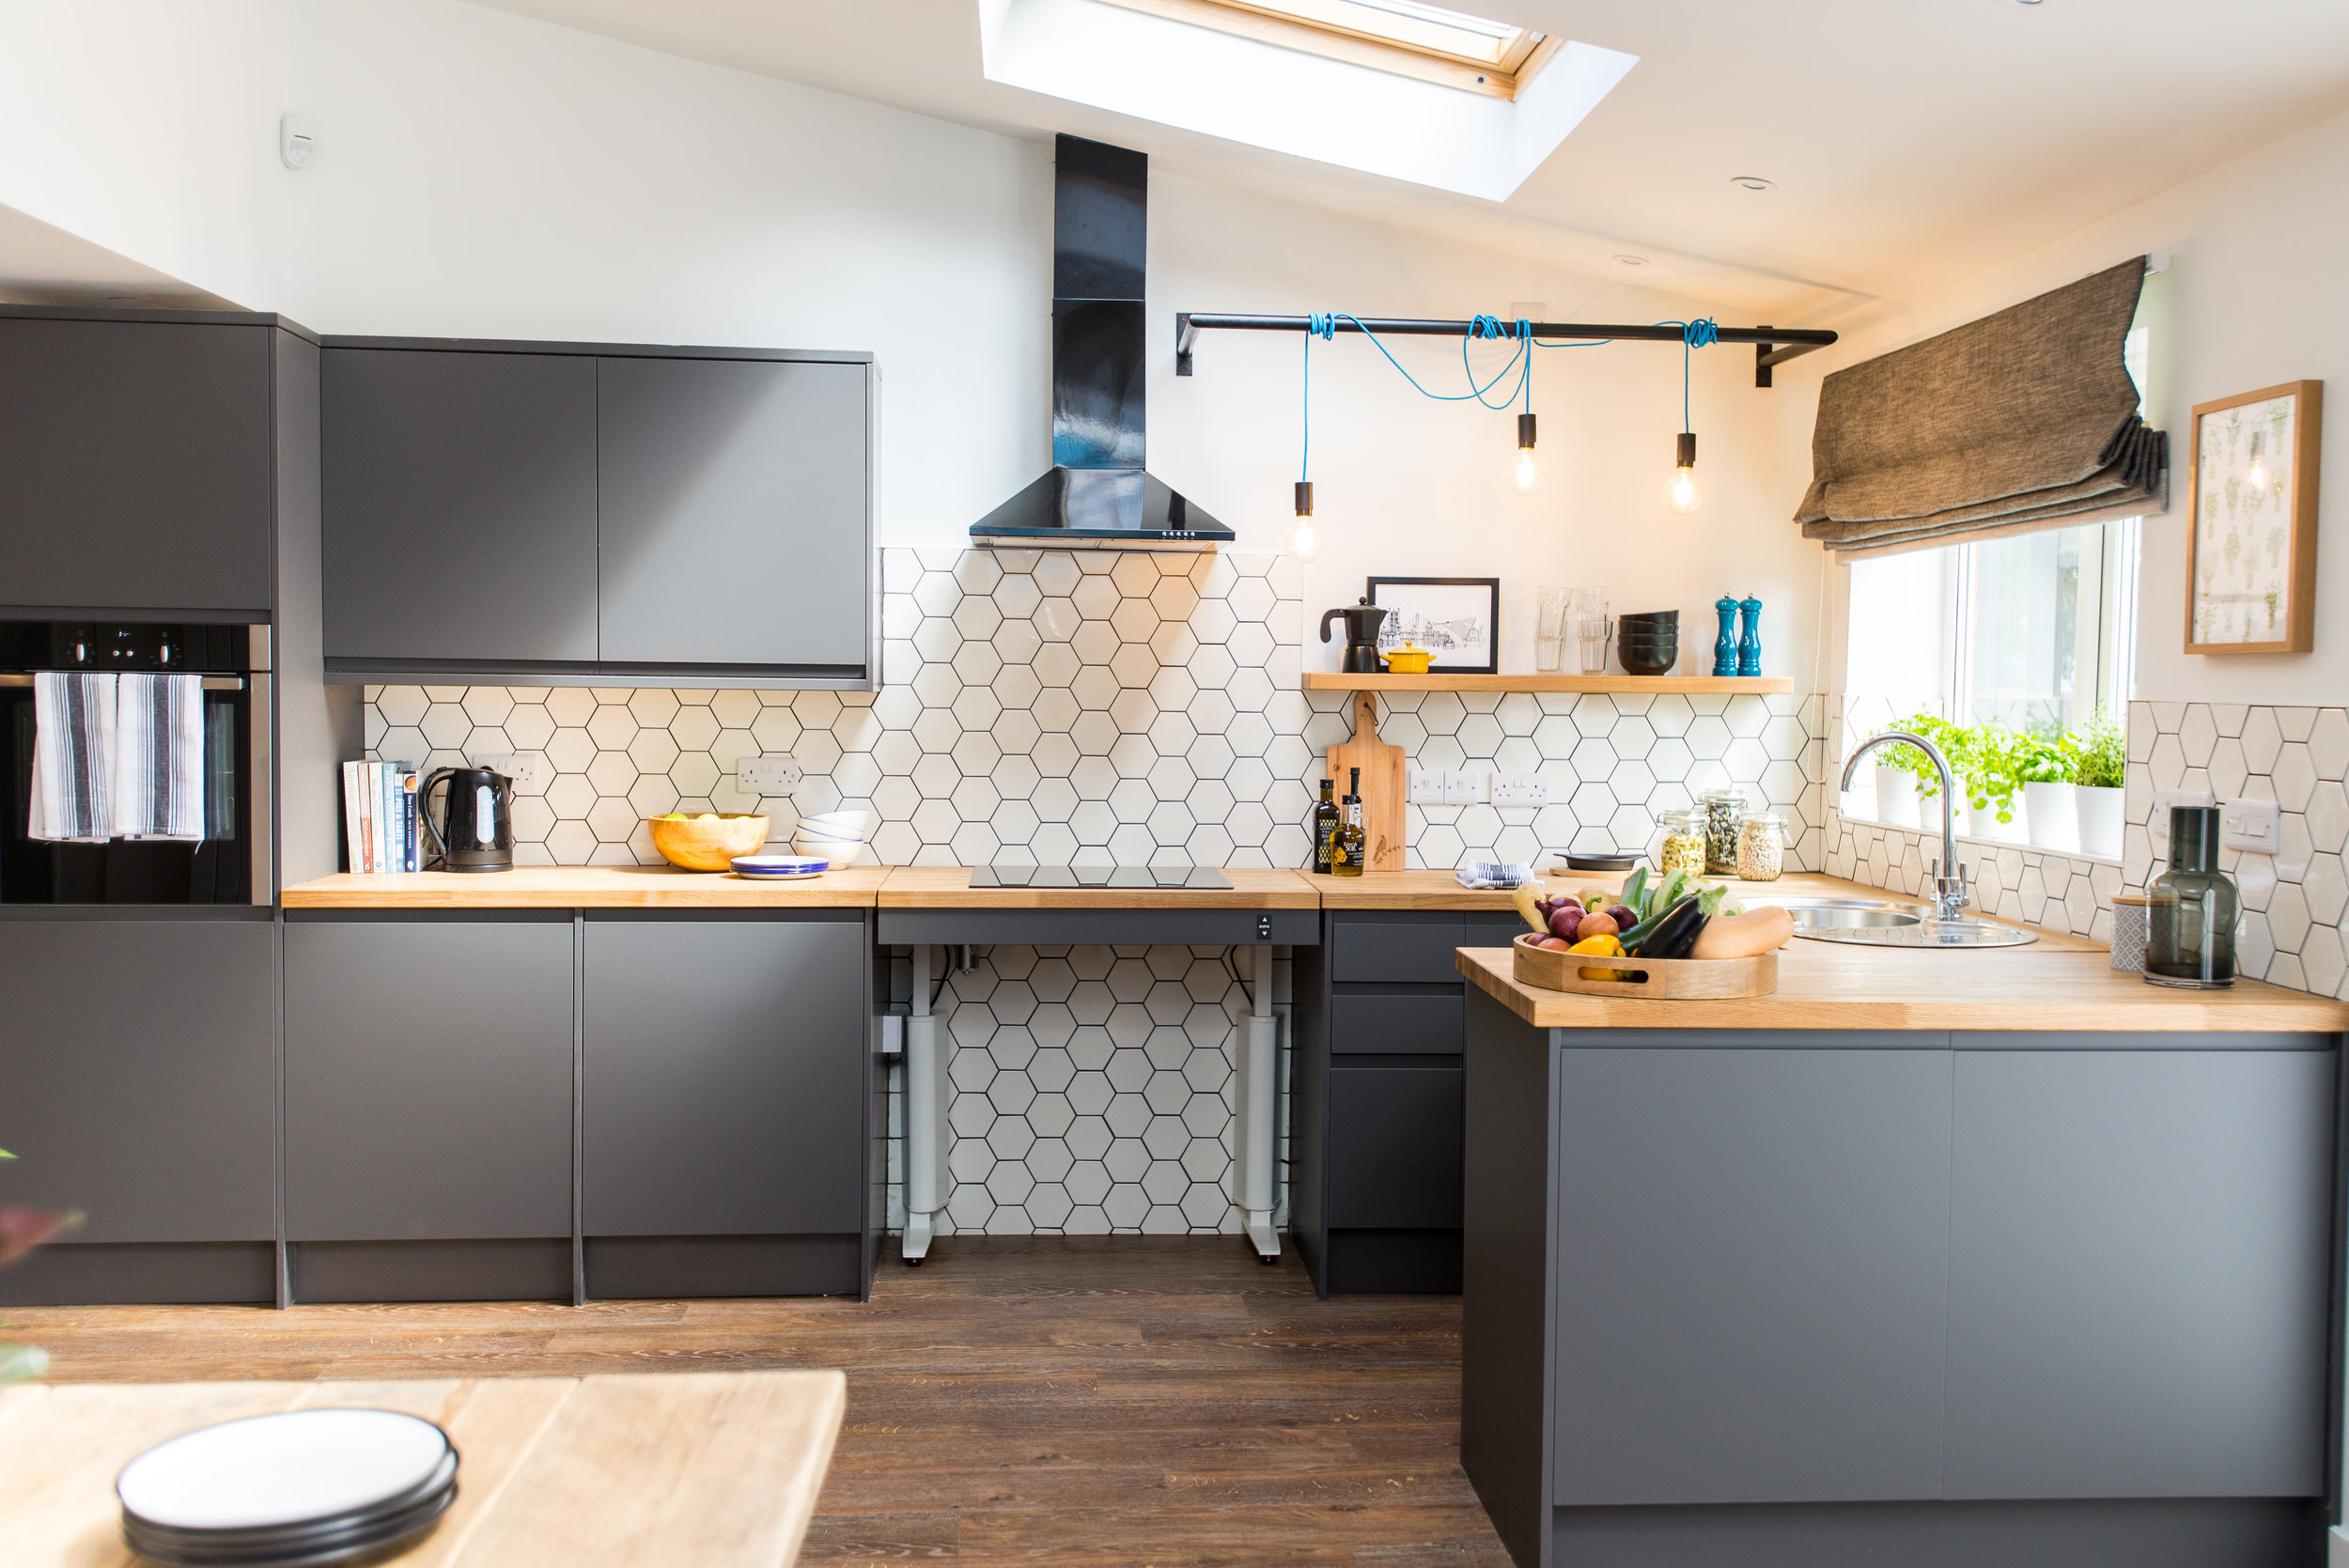 Diy Sos Kitchen Design Stephanie Williams Designs Monochrome Design